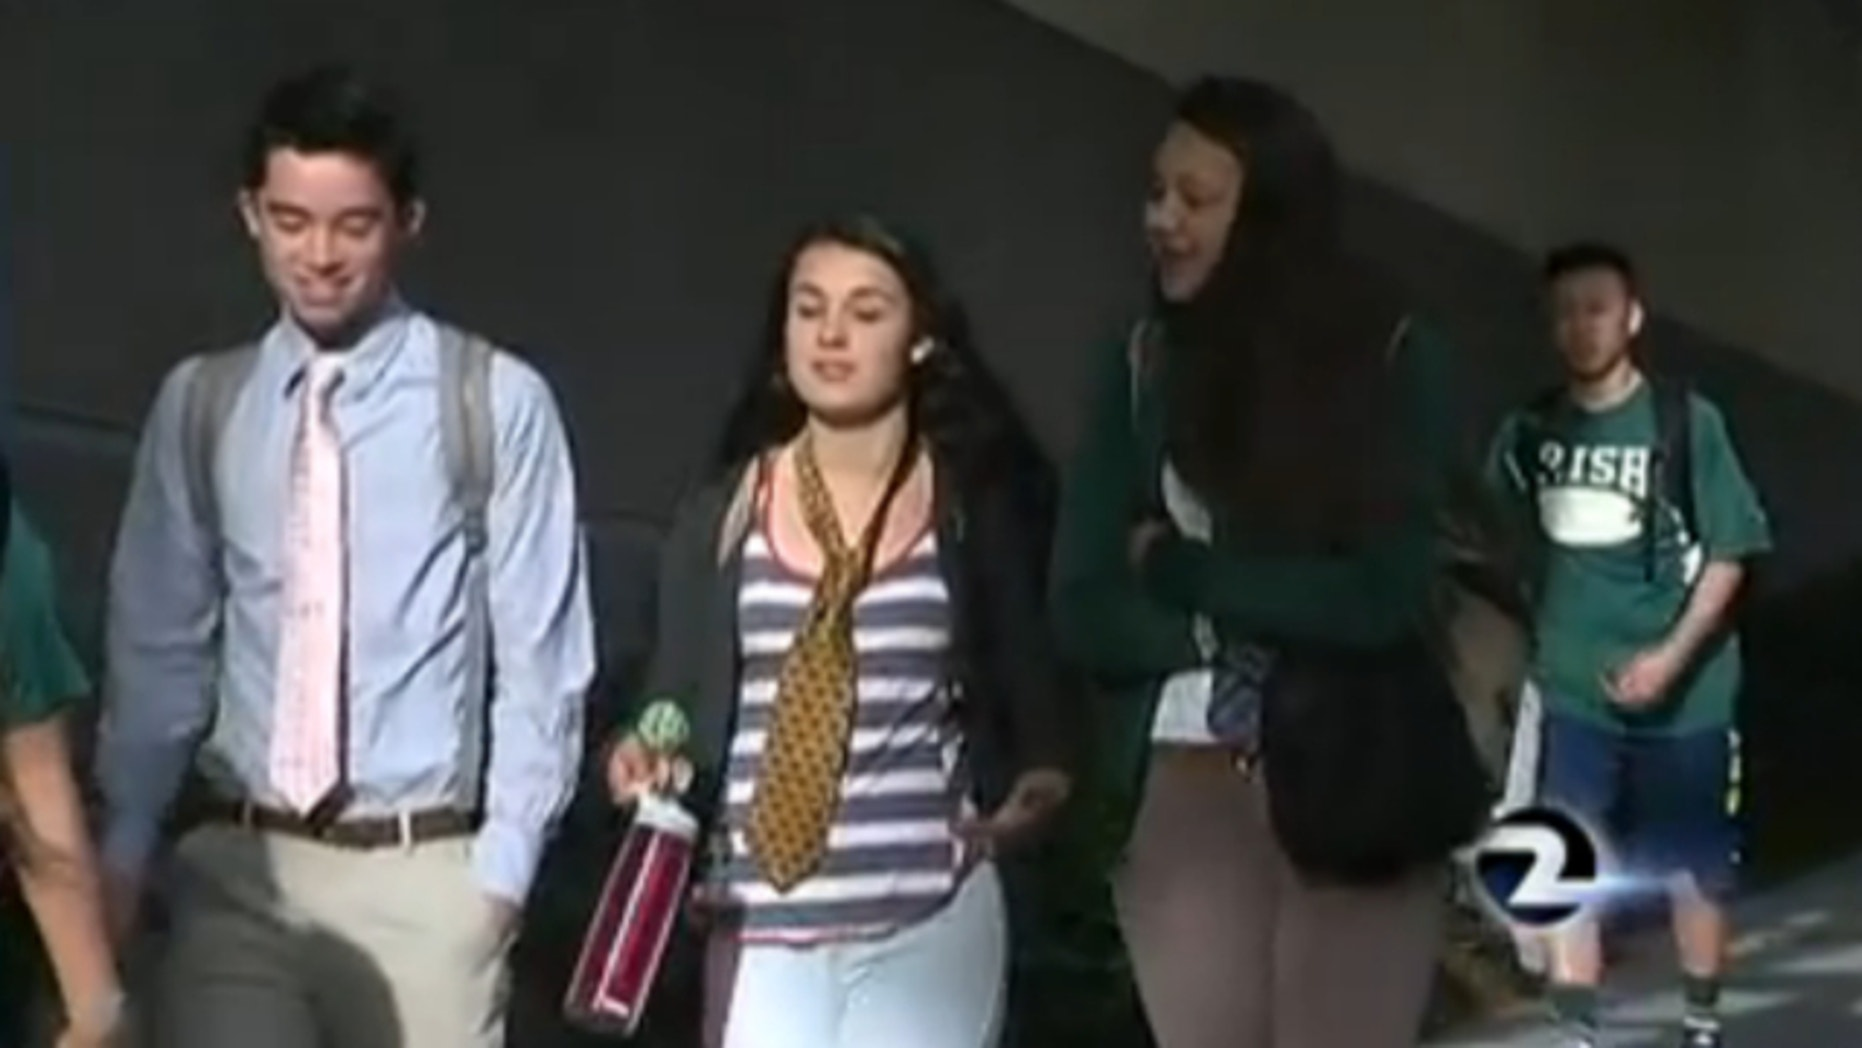 May 17, 2014: Students at Sacred Heart Cathedral Preparatory wore ties over their polo shirts and sweatshirts on campus to protest the administration's decision to omit senior Jessica Urbina's photo.